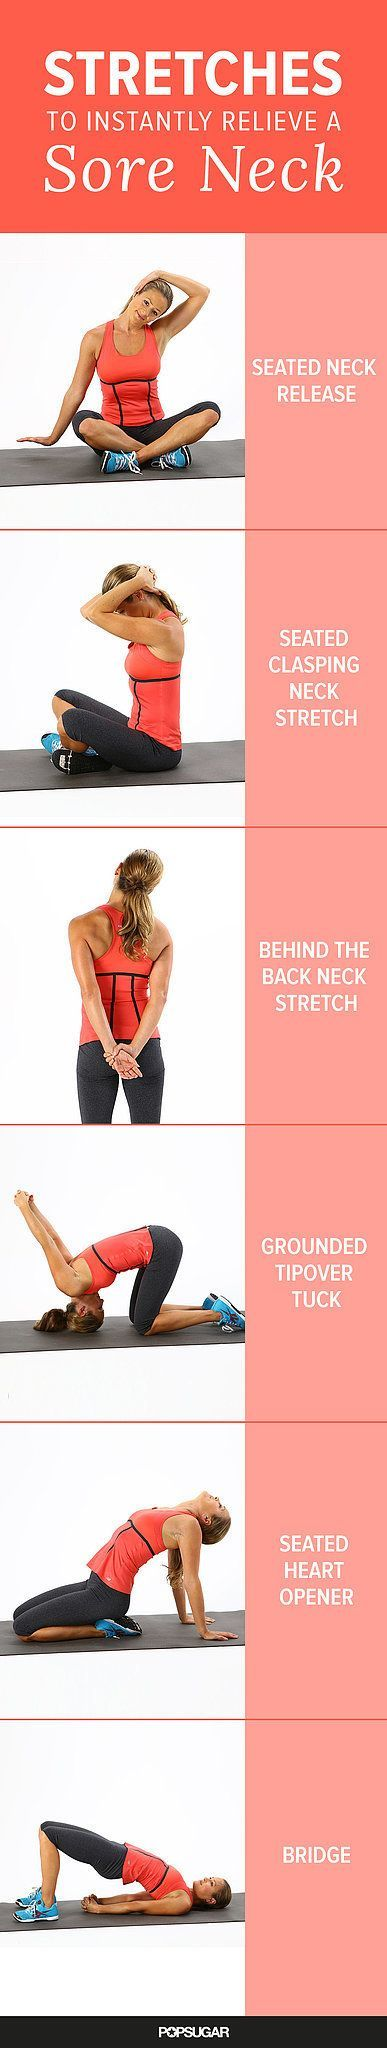 Instantly Relieve a Sore Neck With These Stretches